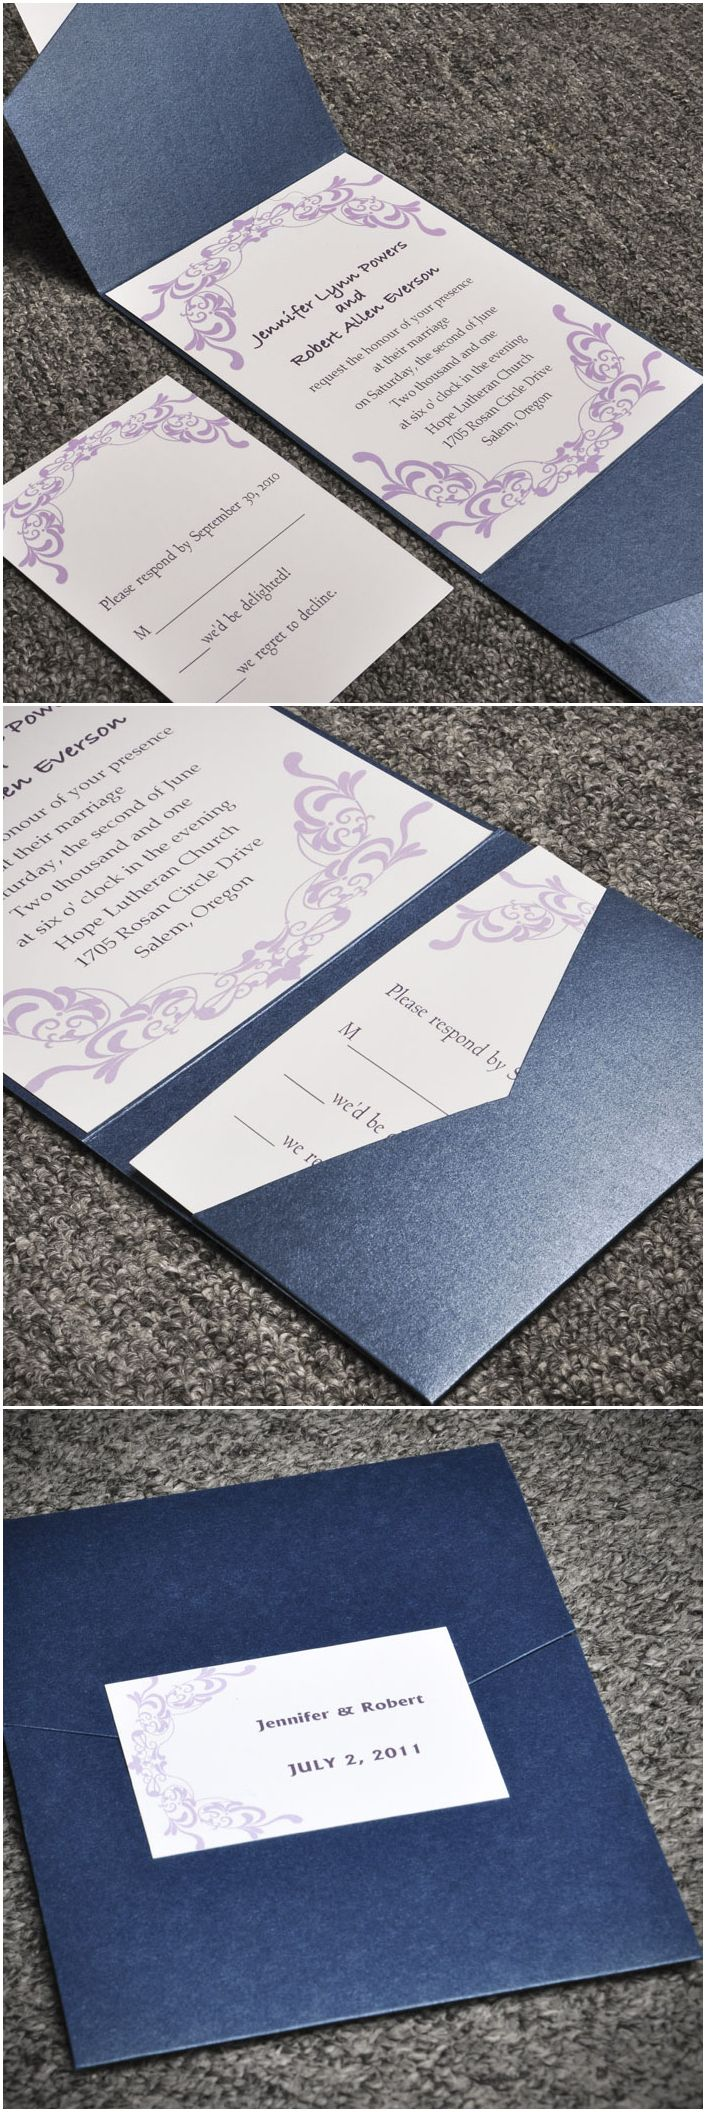 elegant purple damask card and blue pocket affordable wedding invitation sets ewpi015 - Cheap Wedding Invitations Sets